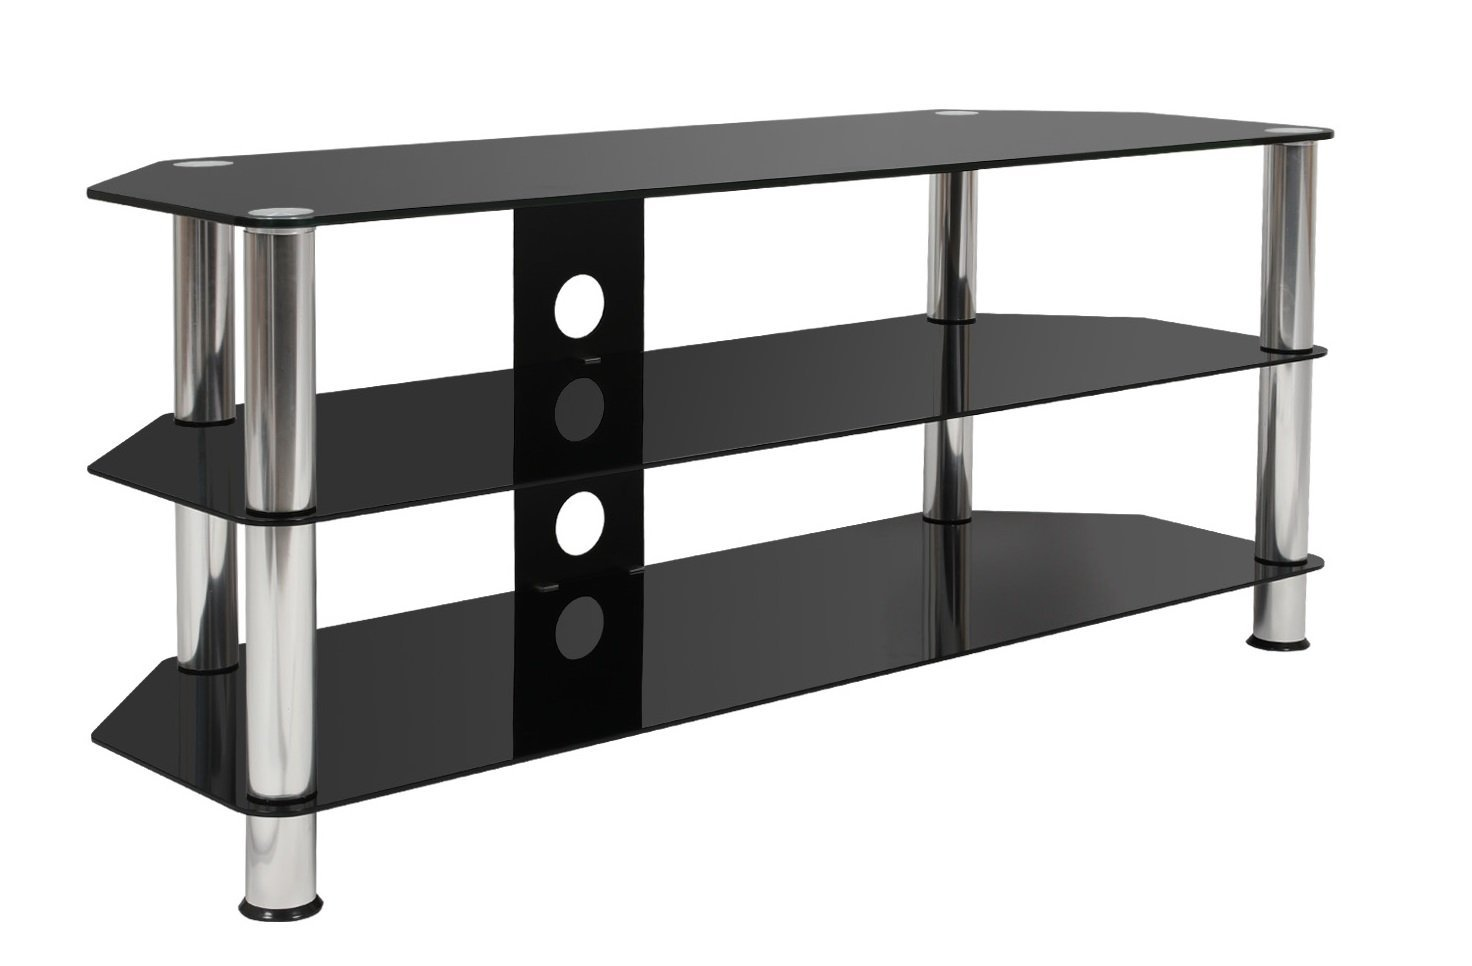 Mountright UMB4 Black Glass TV Stand 120 Centimetre Wide For Most Televisions 32 Up To 58 Inch MRUMB4